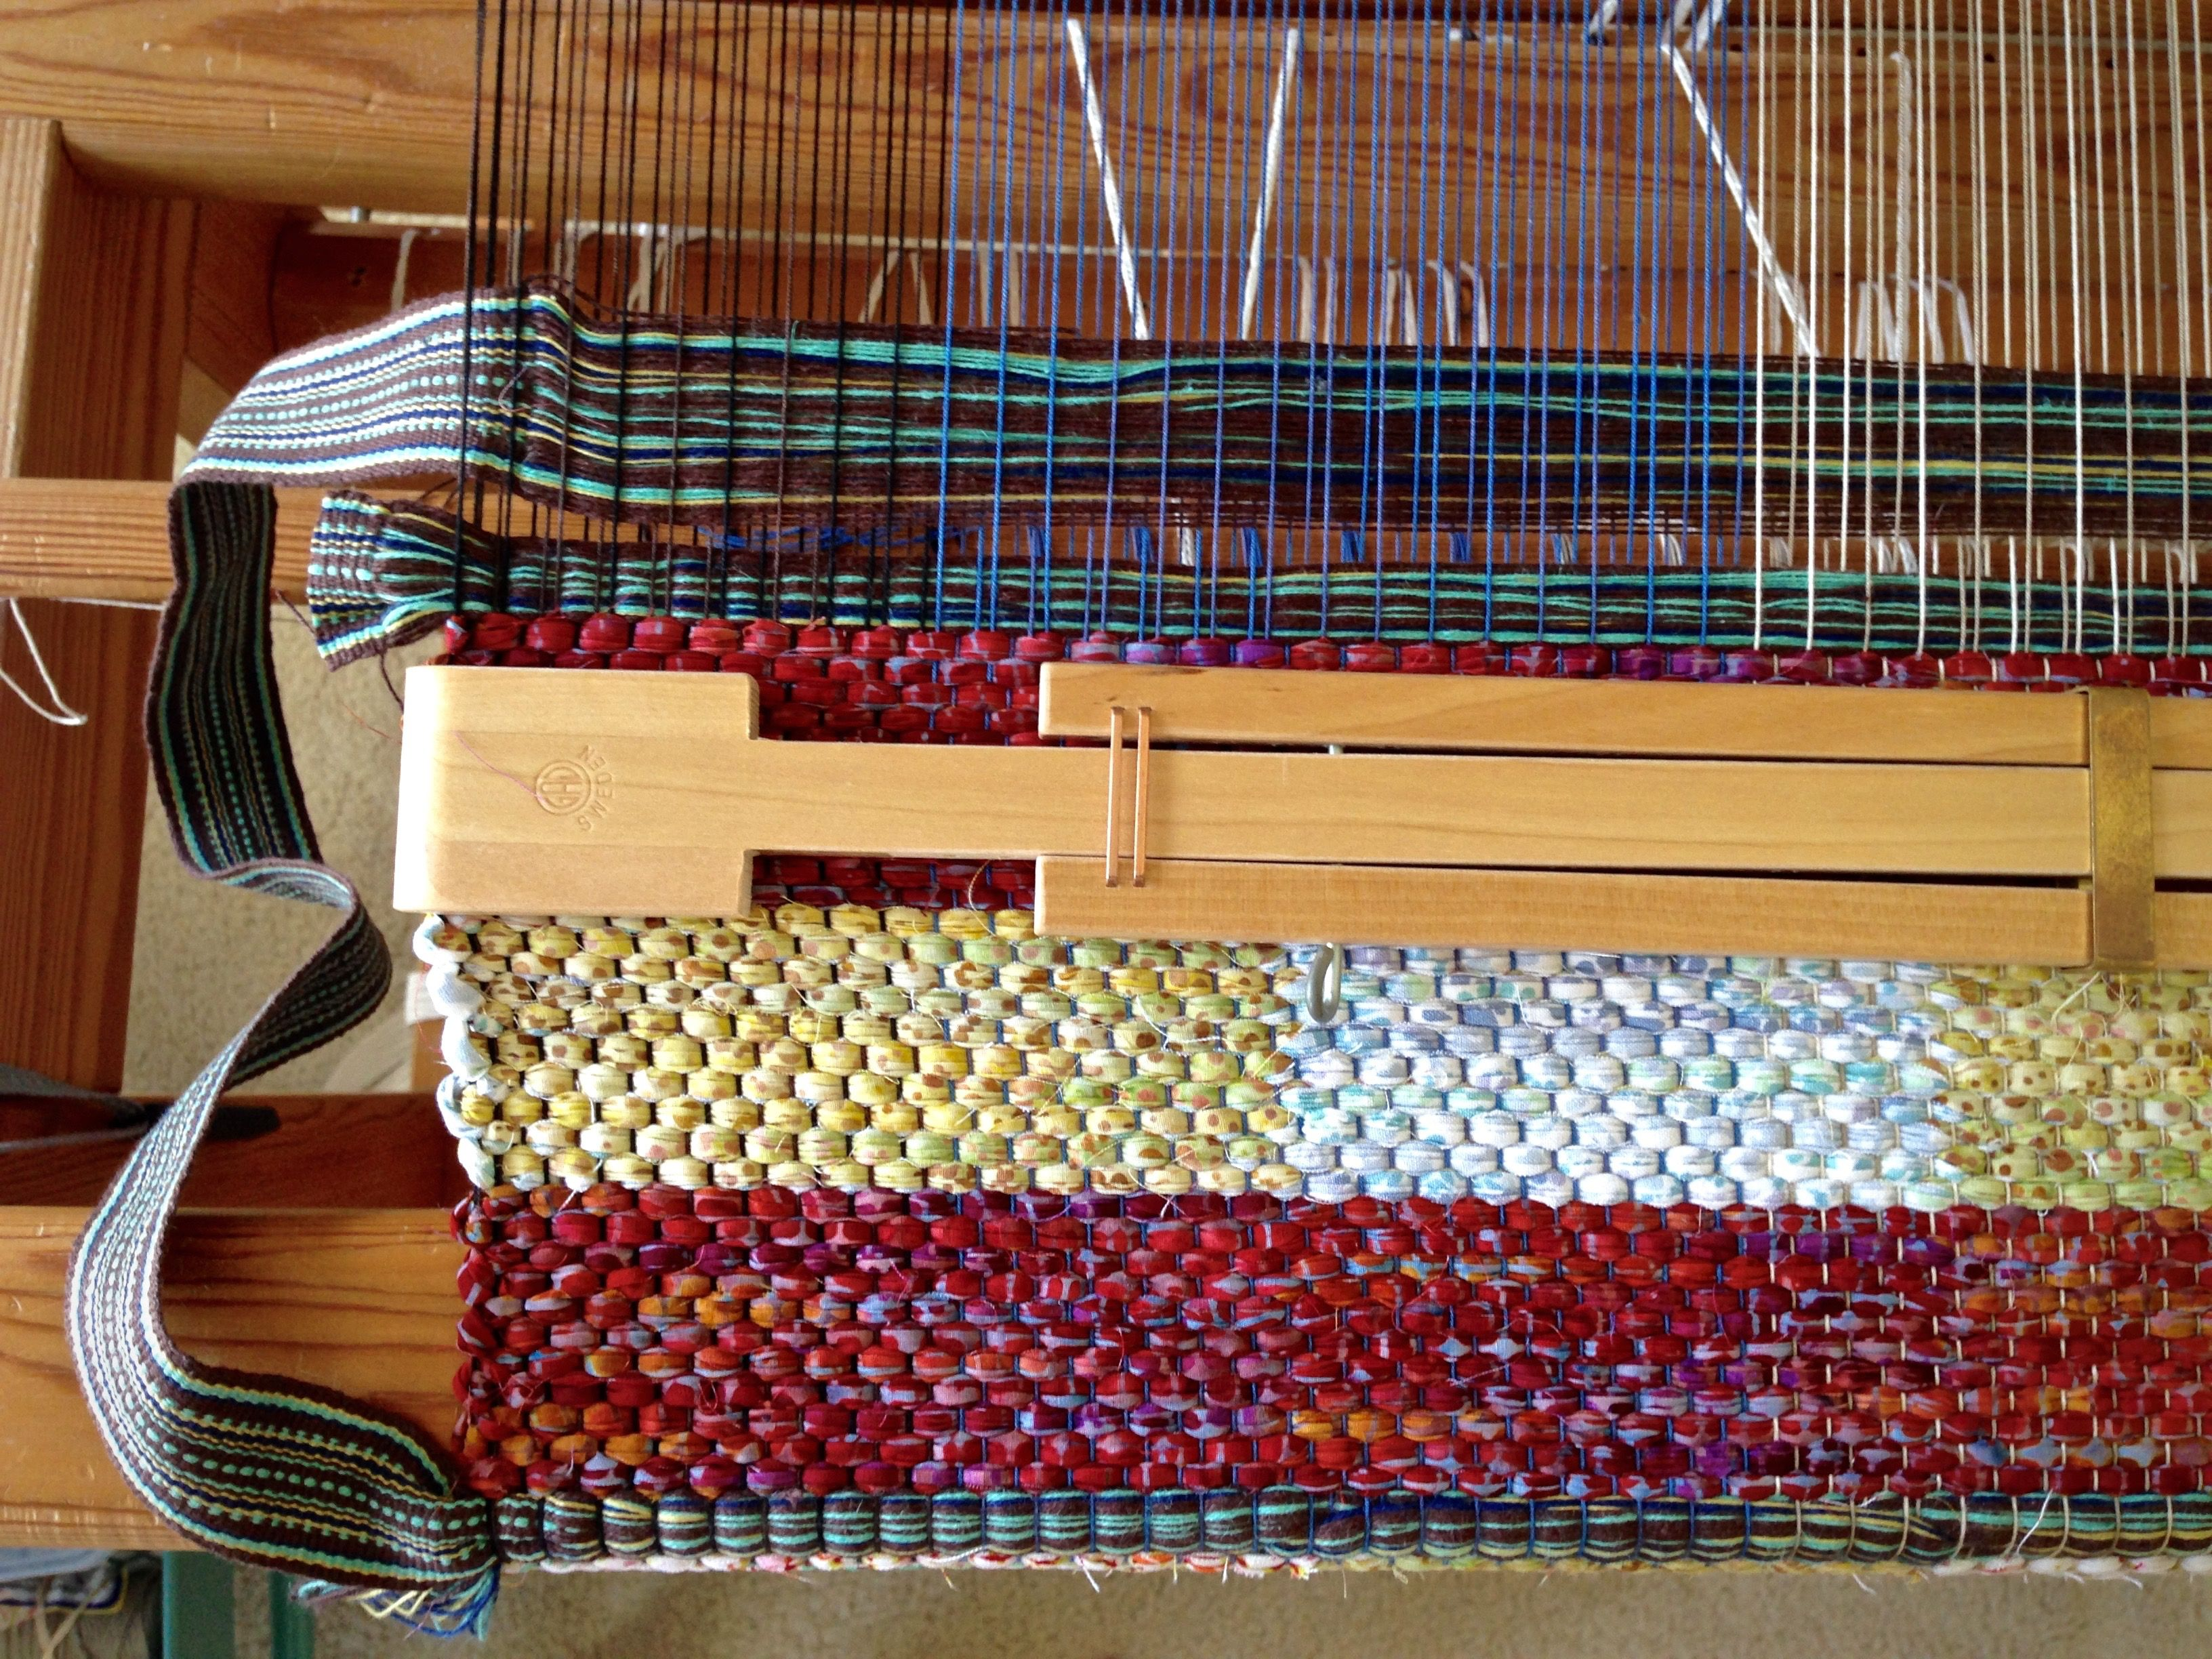 How To Insert Bag Handles Into The Weaving Weaving Tissage Laine Tissu